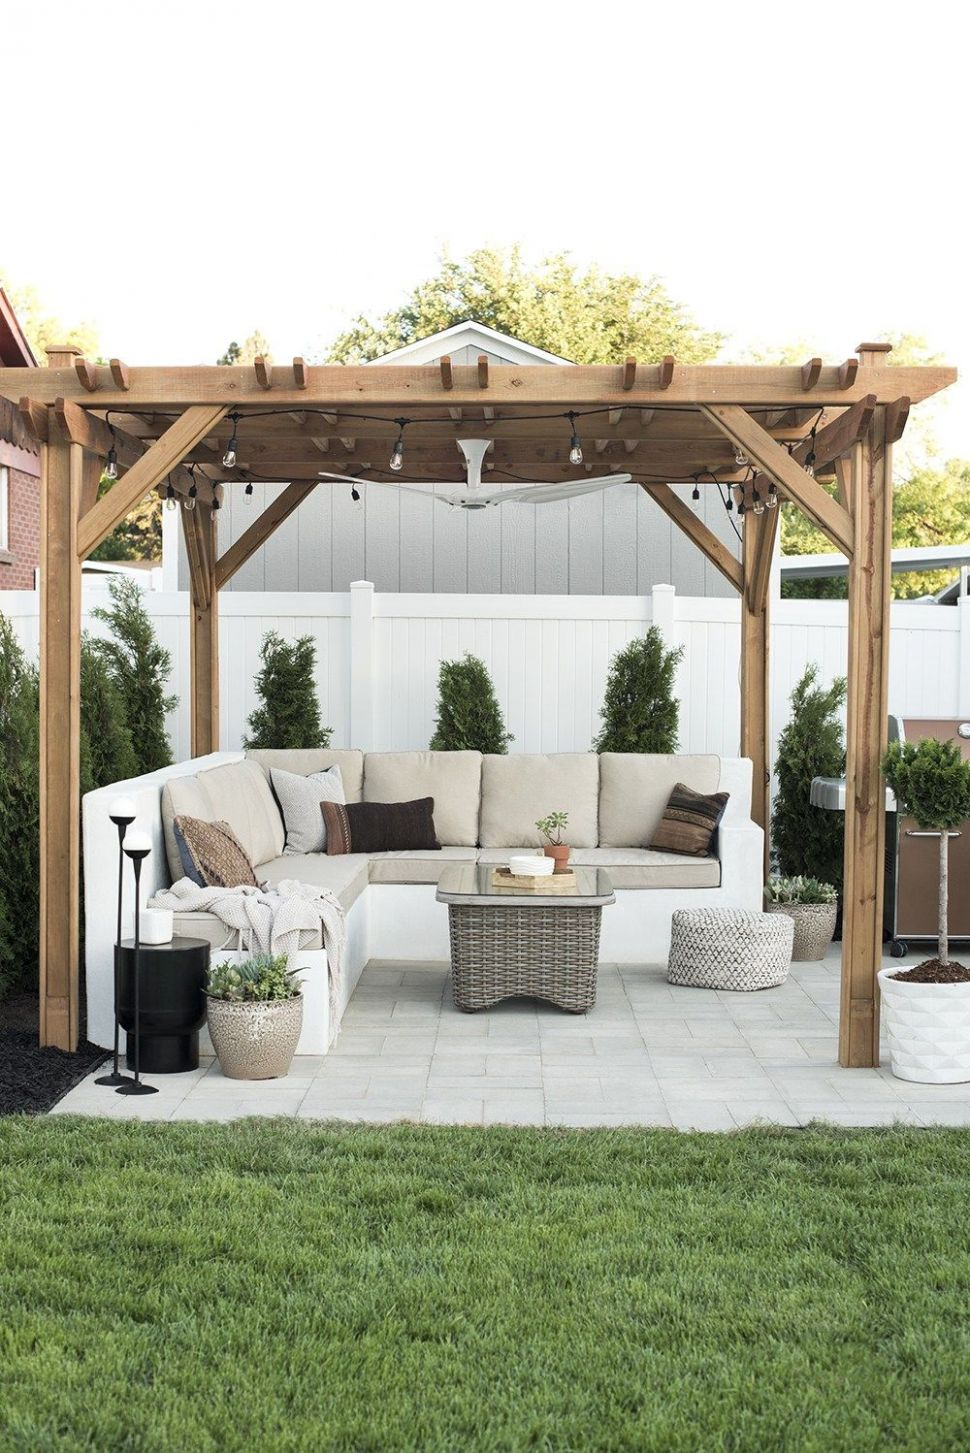 10 Best Pergola Ideas for the Backyard - How to Use a Pergola - backyard ideas pergola